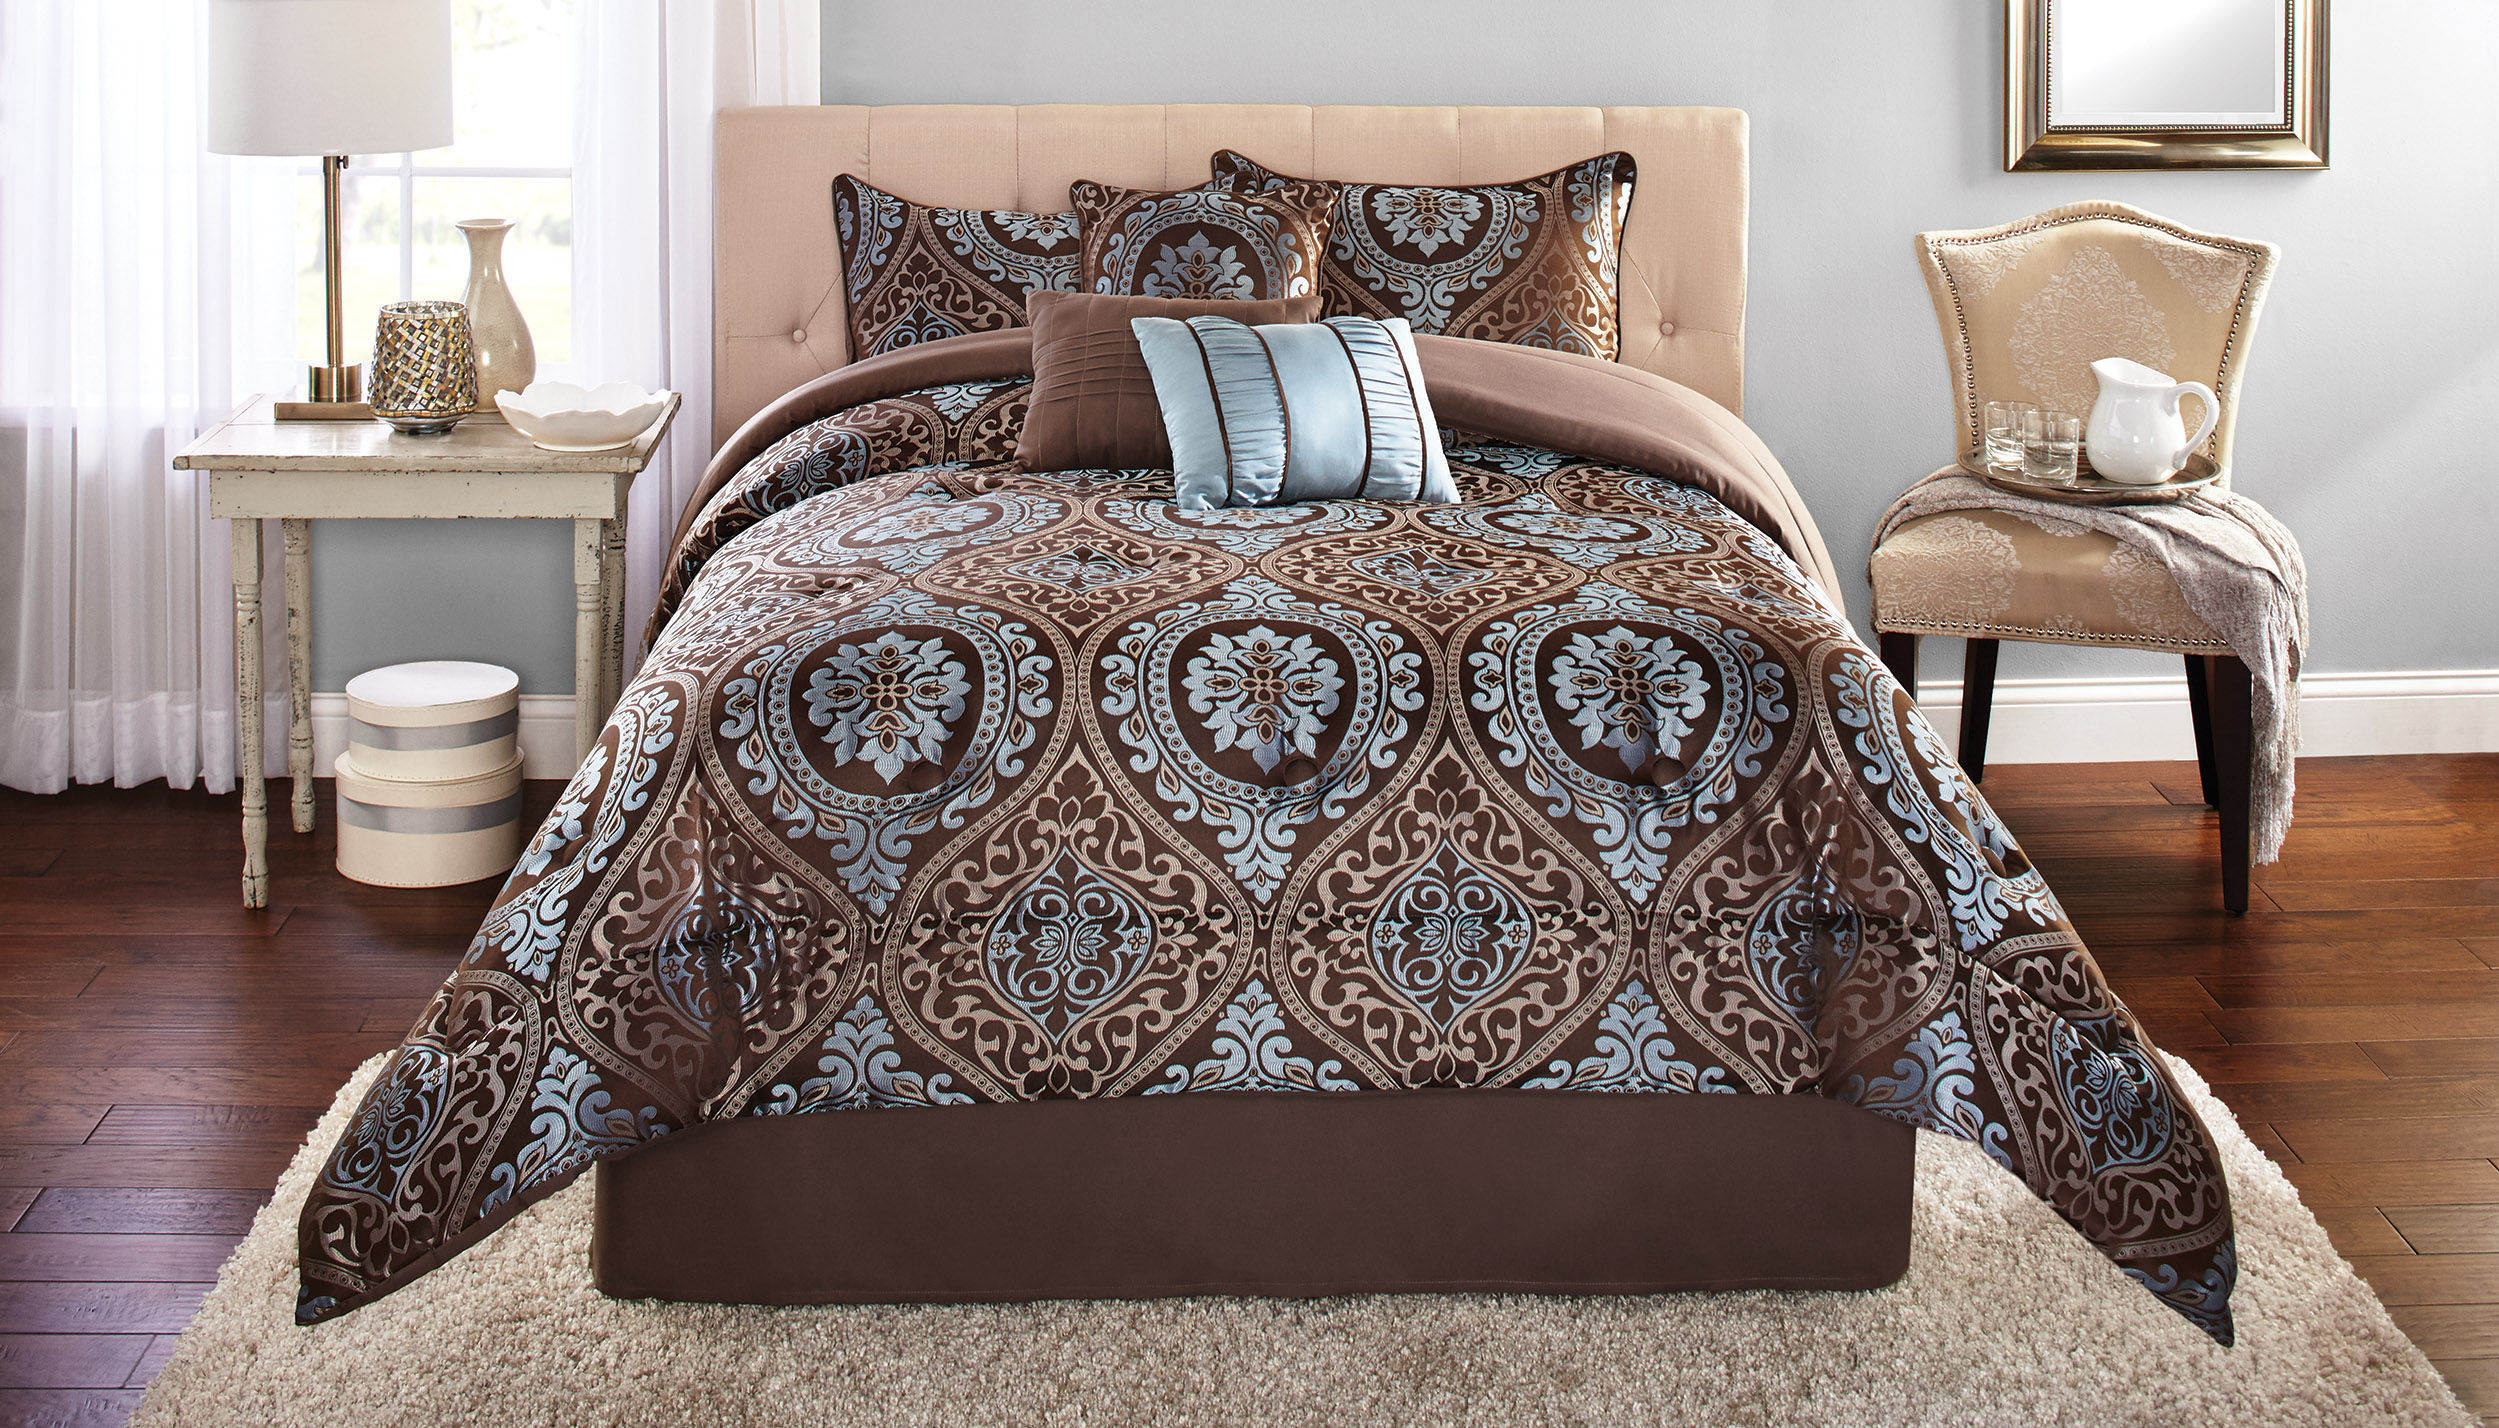 Mainstays Bedding Comforter 7 Piece Victoria Jacquard Bed Cover Full Queen Brown